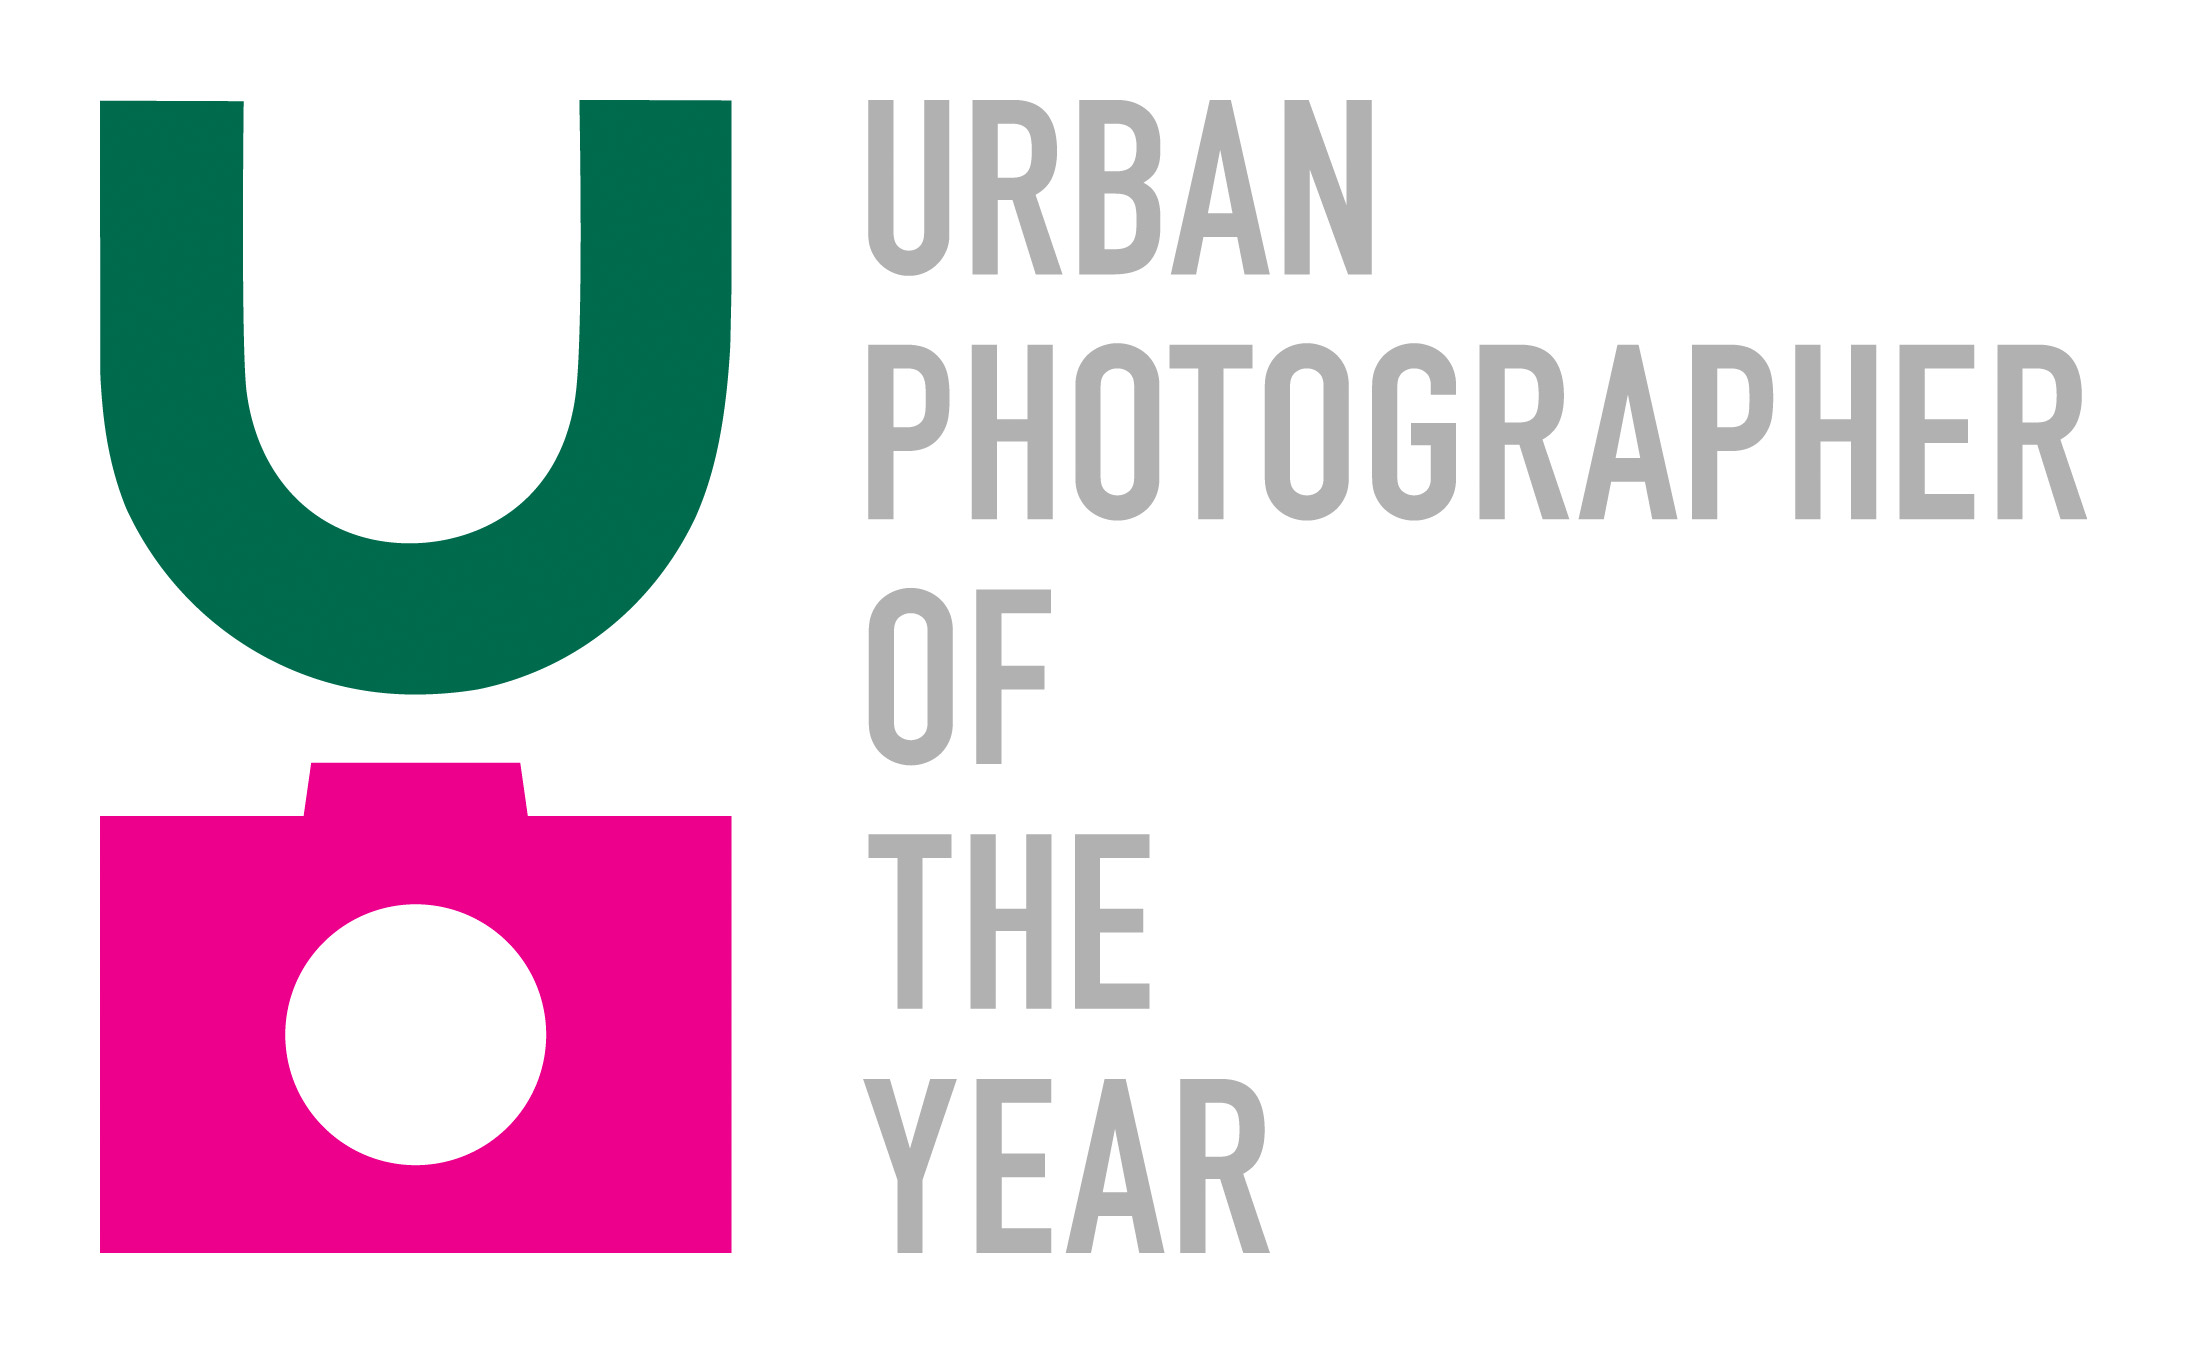 CBRE Urban Photographer of the Year 2019